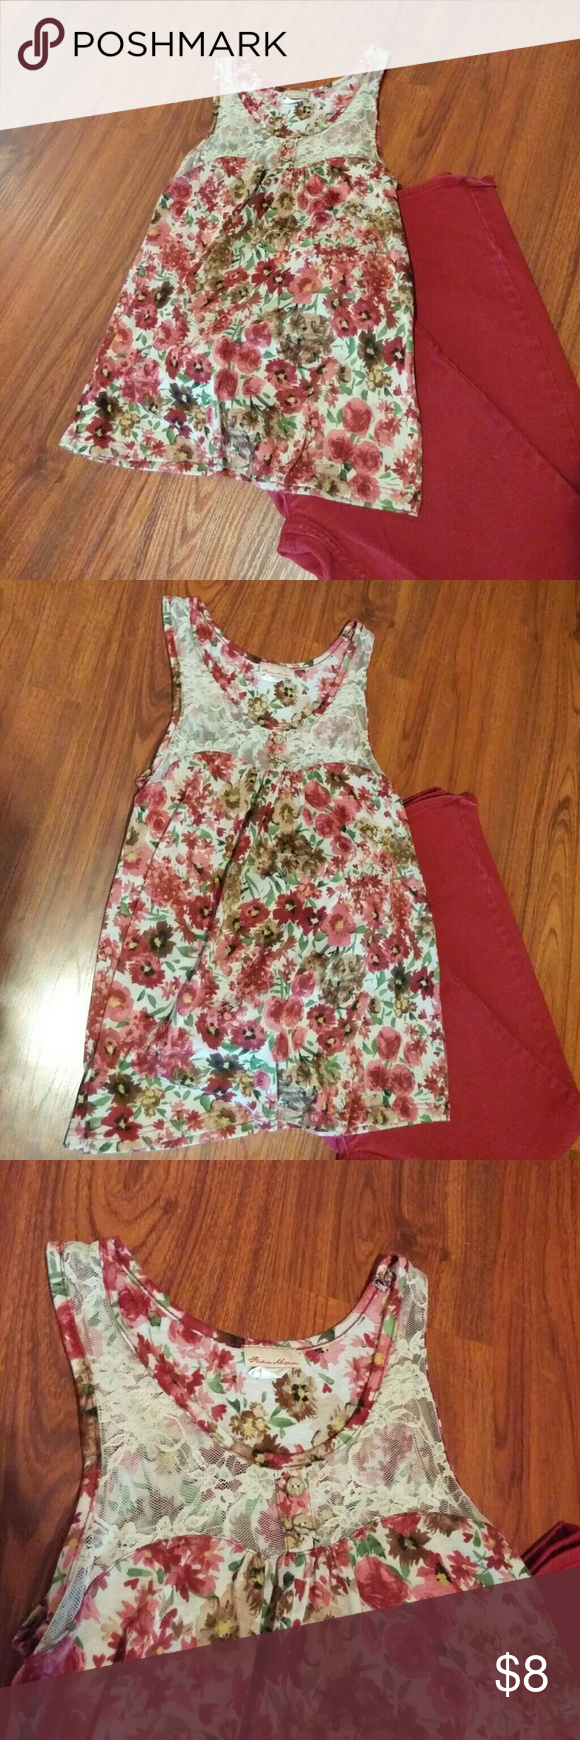 Floral tank with lace accent Super cute cream colored tank with floral print in shades of burgandy, brown, and green. Cream color lace inset with wood button details. Size large. Fashion Magazine Tops Tank Tops